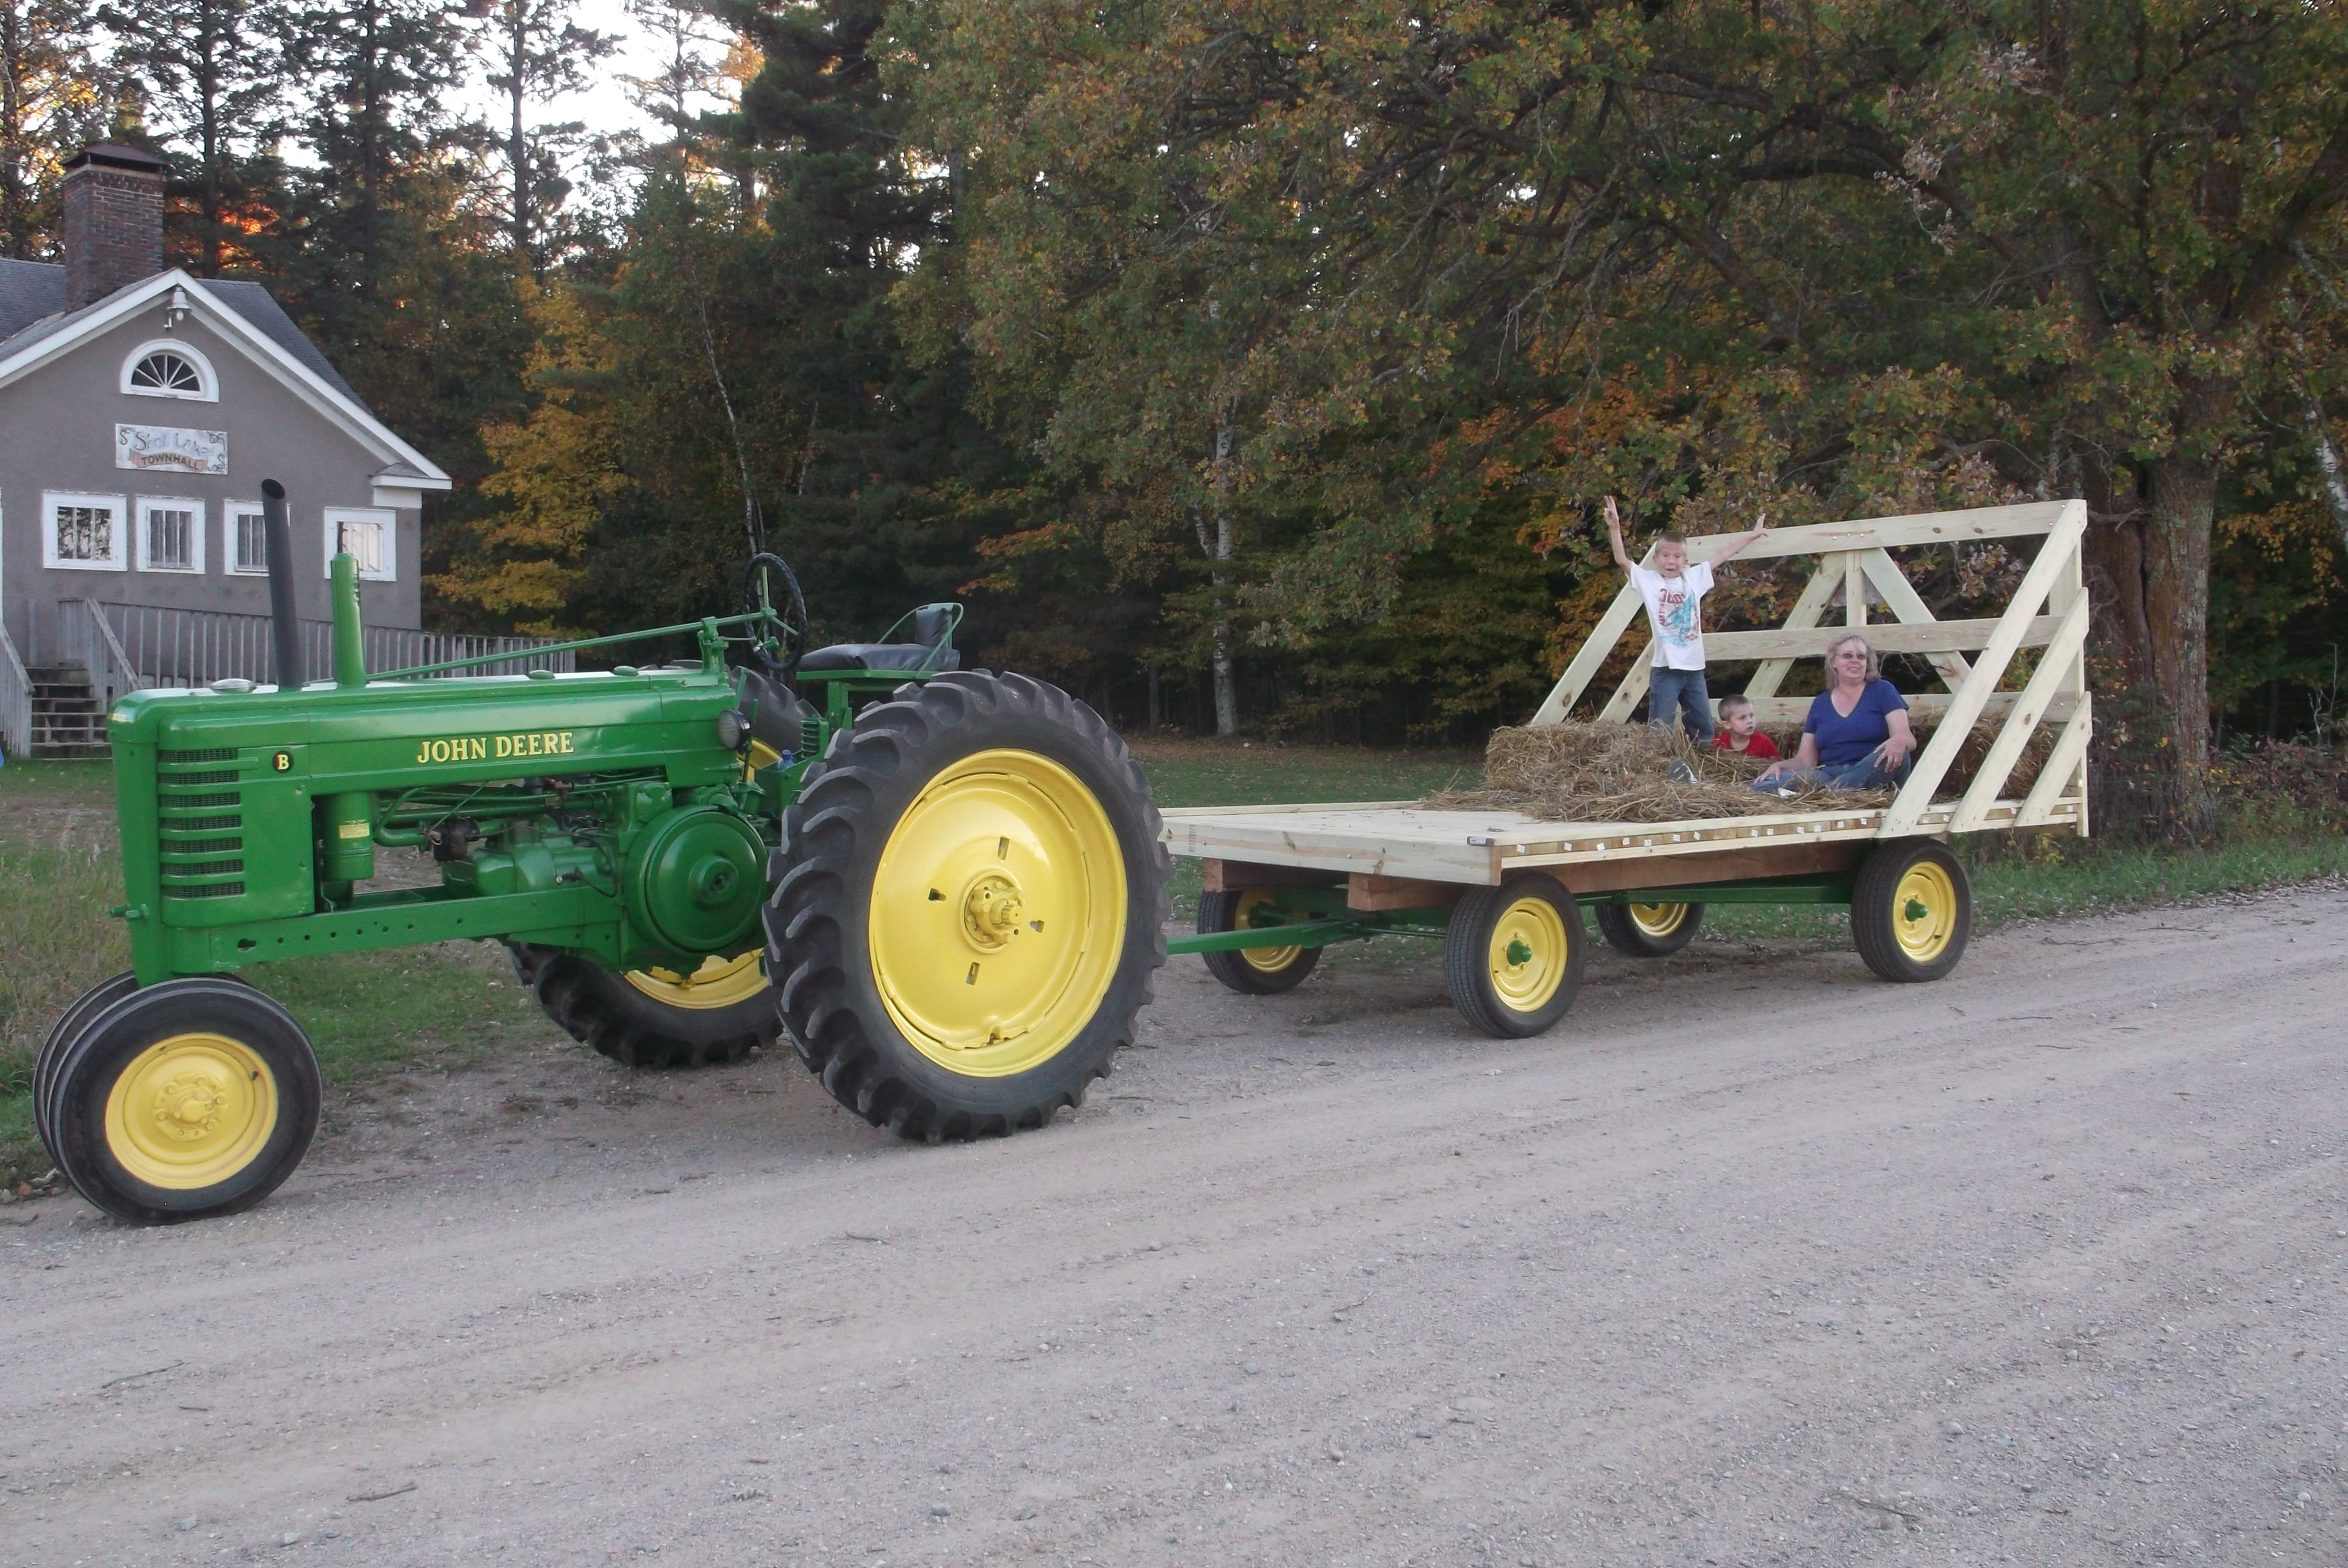 Tractor Pulled Wagon : John deere pull along wagon the